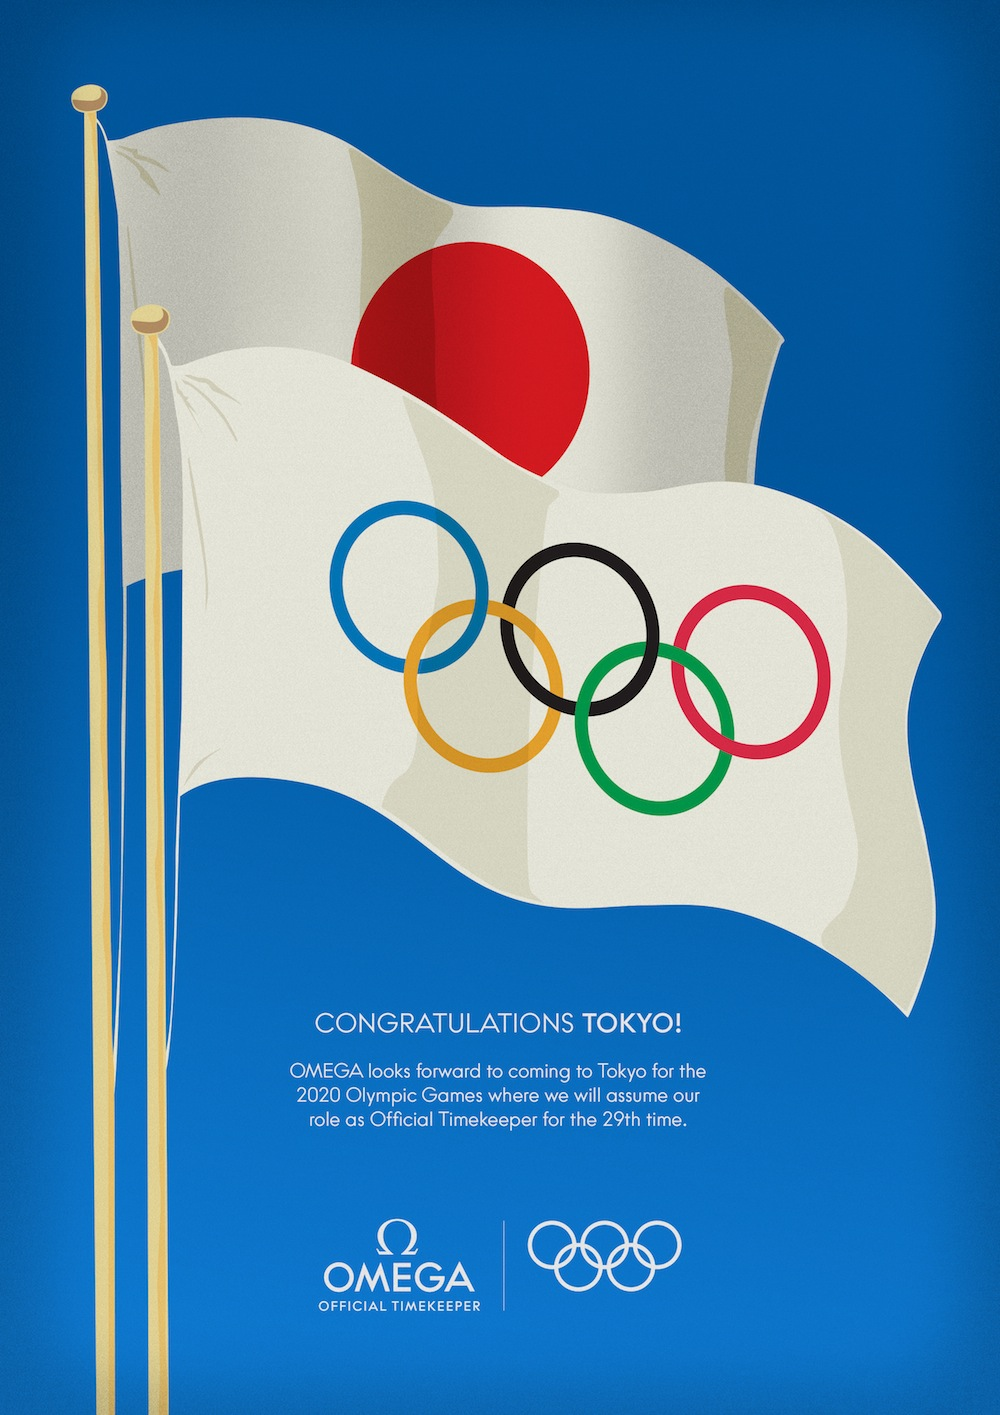 CONGRATS TOKYO - Olympic Games 2020